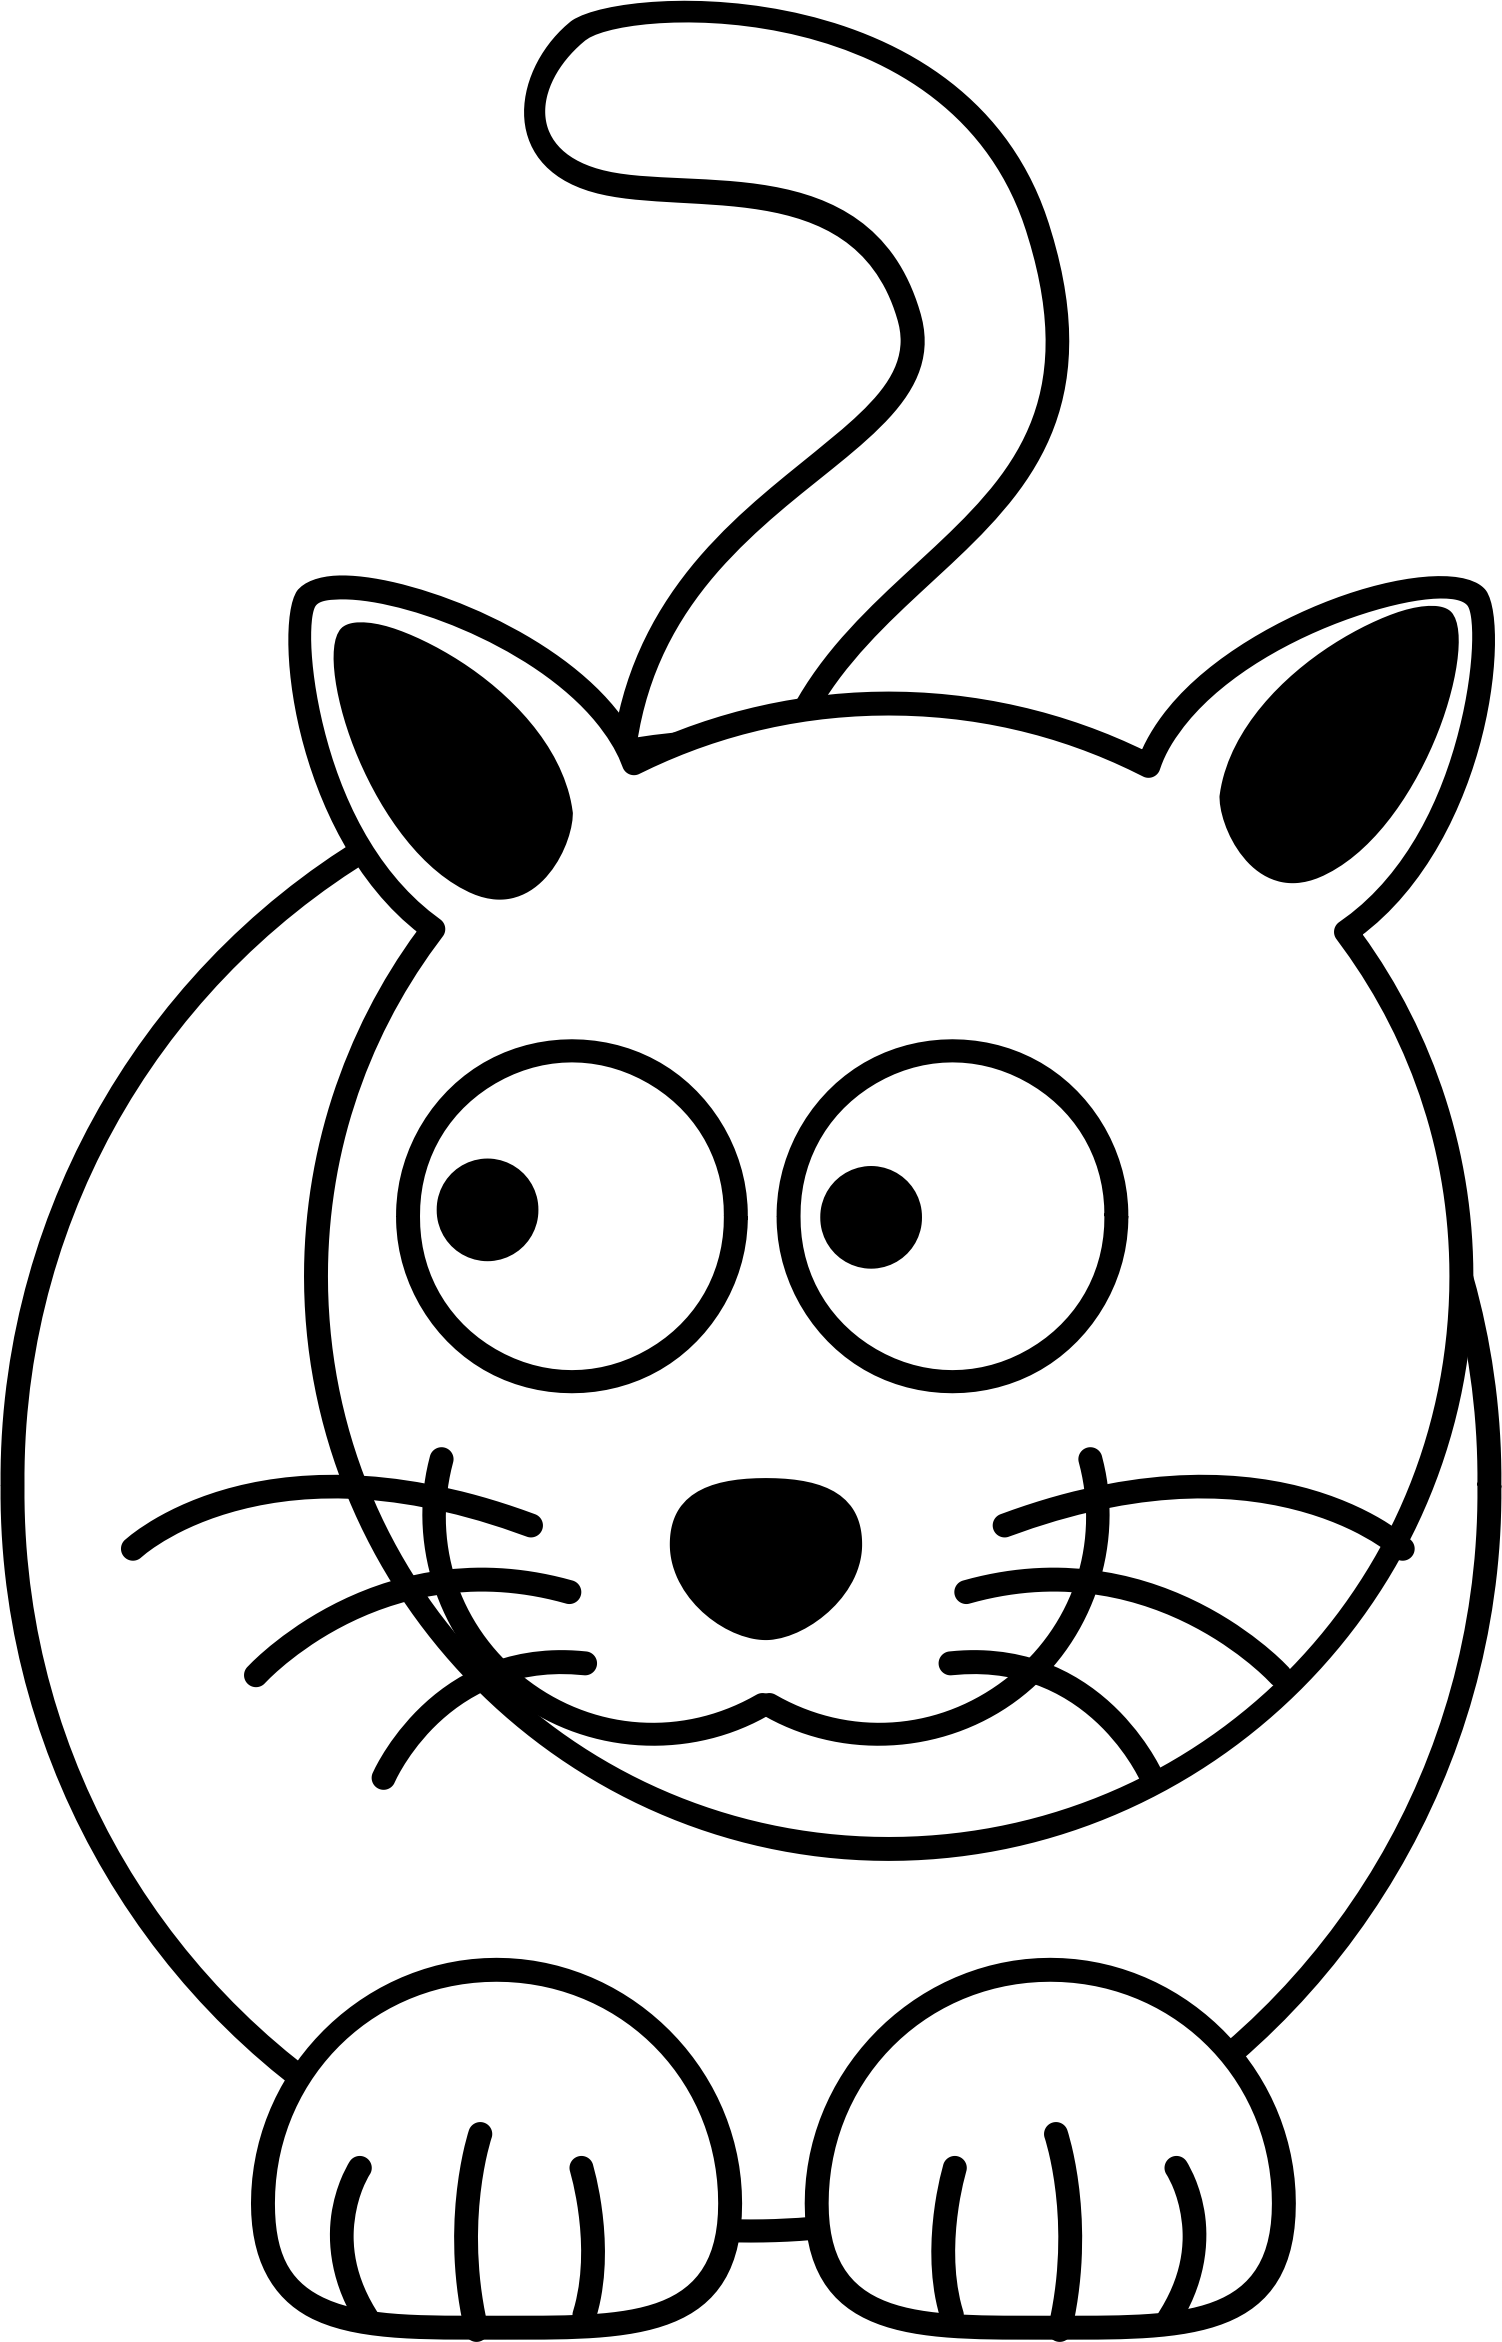 Kitty clipart kitty cat. Big image png